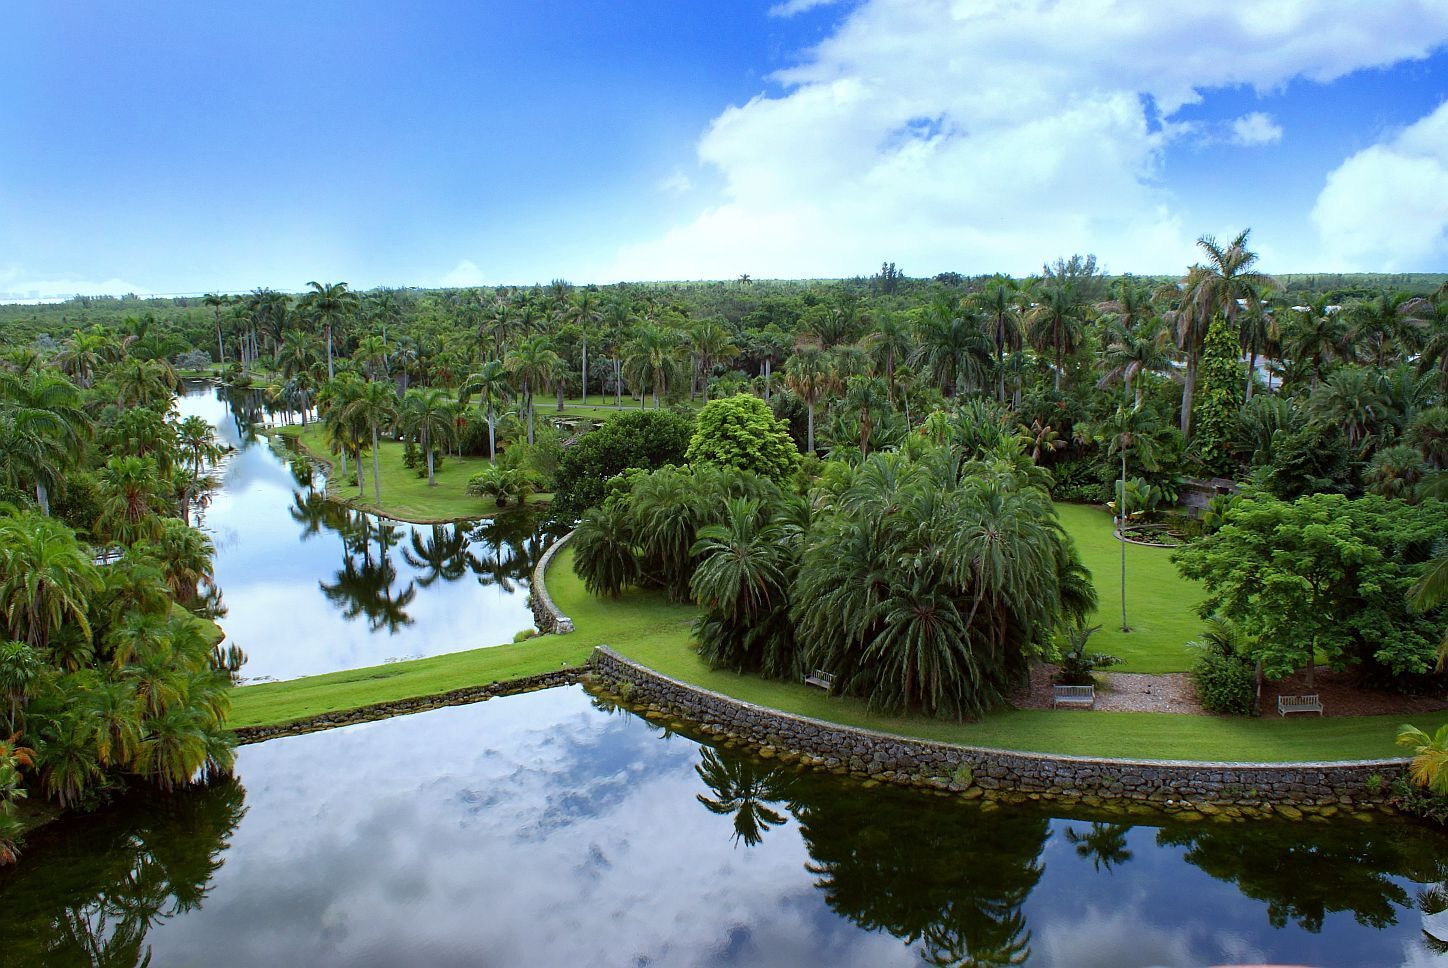 Fall garden festival at fairchild tropical botanic garden - Fairchild tropical botanic garden ...